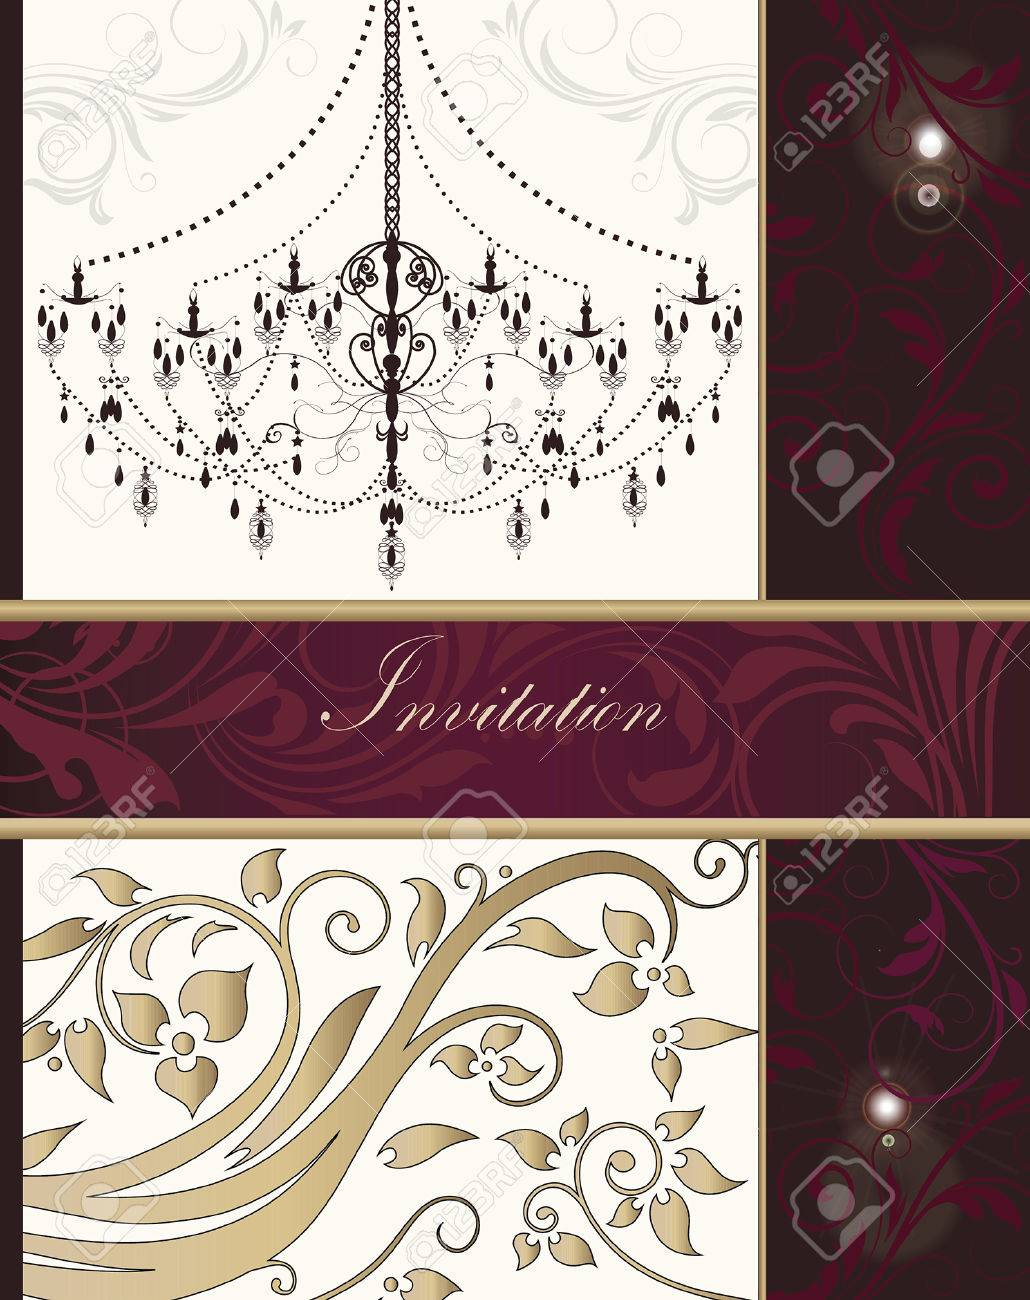 Vintage invitation card with ornate elegant retro abstract floral gold red and fuschia pink flowers and leaves on beige and dark red background with chandelier divider and ribbon text label vector illustration stopboris Choice Image